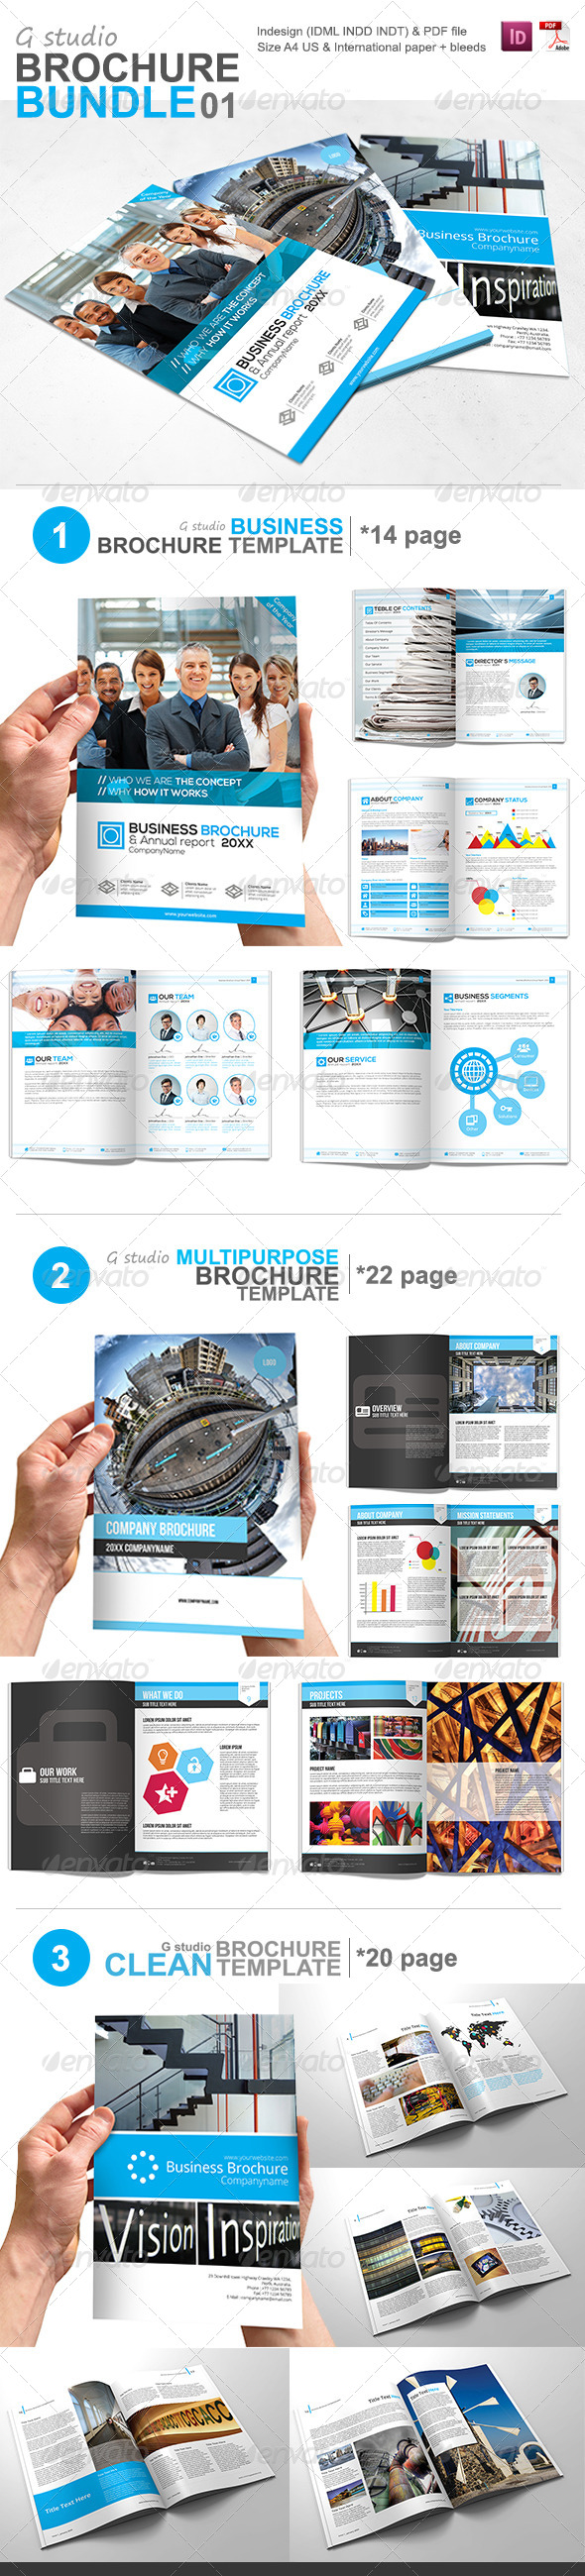 GraphicRiver Gstudio Brochure Bundle 01 5882349